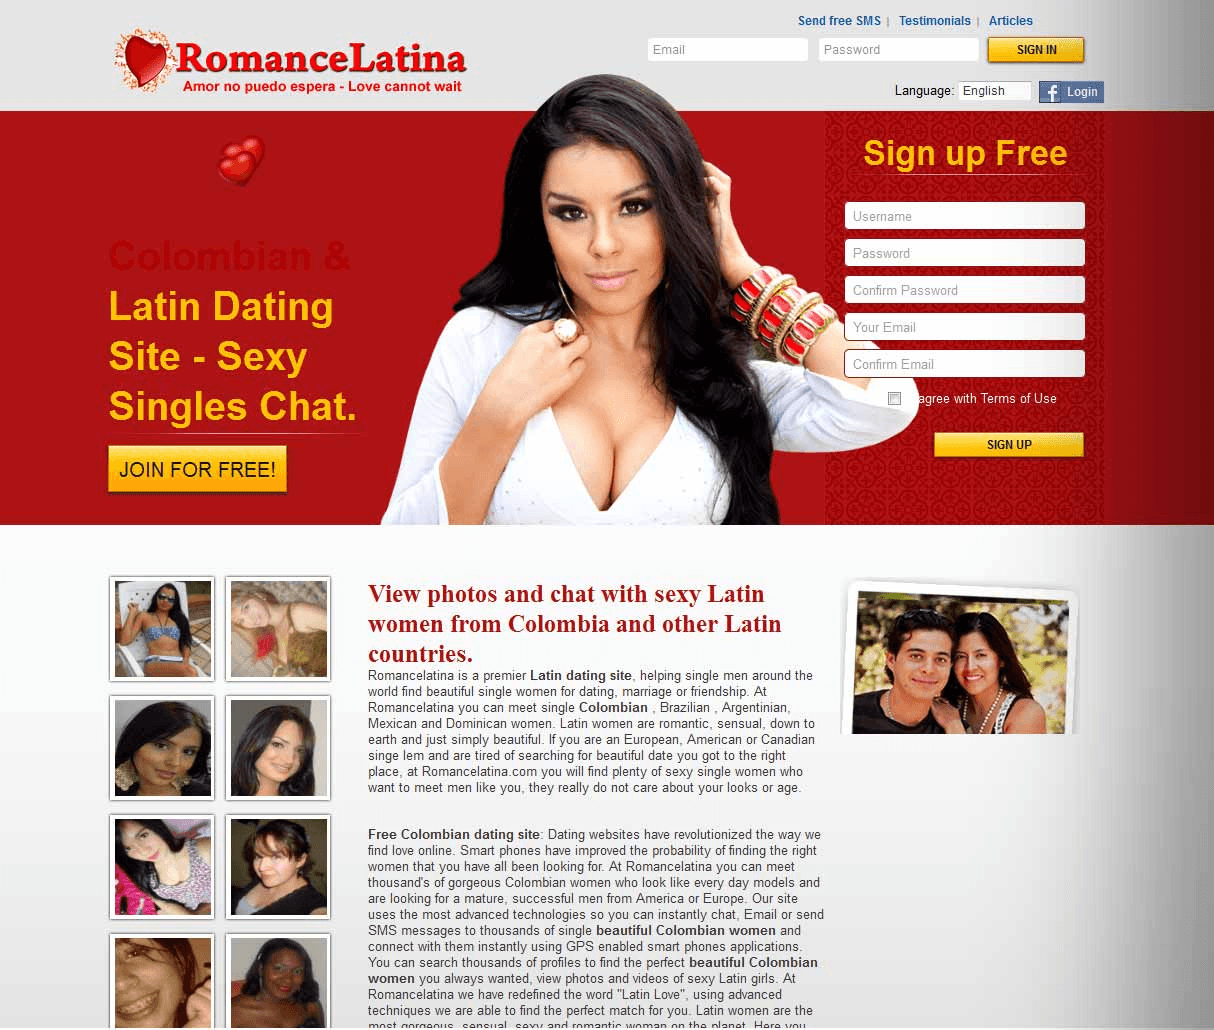 RomanceLatina Website Screenshot